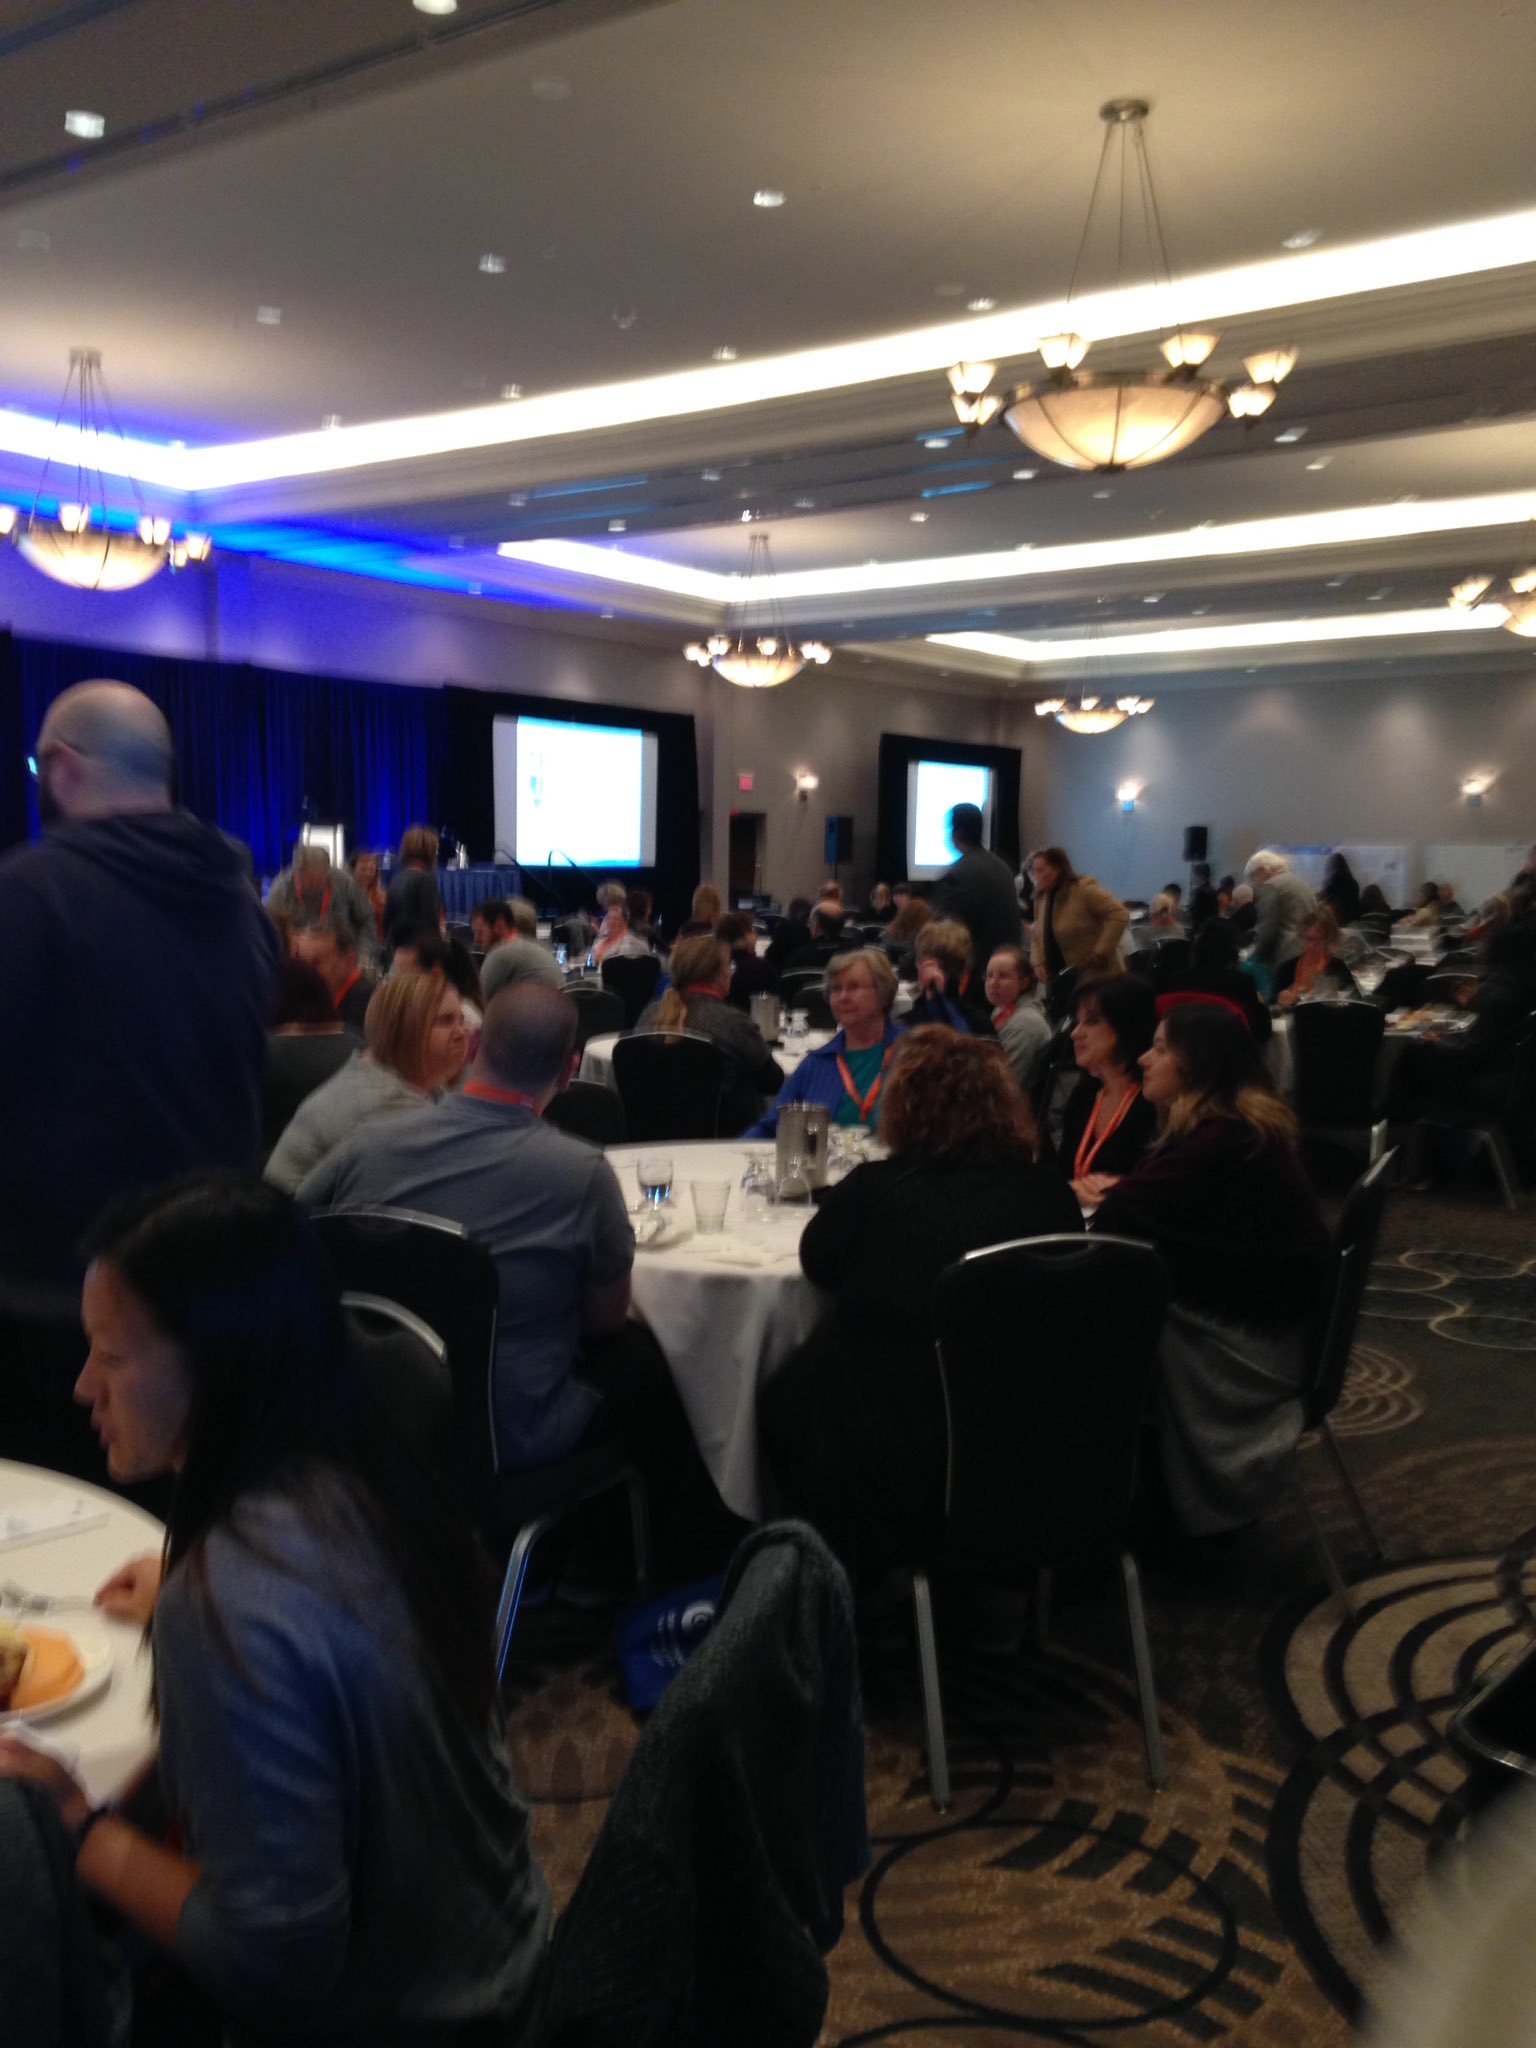 The #BrainTumour National Conference room is filling up! The live stream will be starting soon at https://t.co/eonXdDJuEb @StreamingInc https://t.co/F6HmzFAcAC